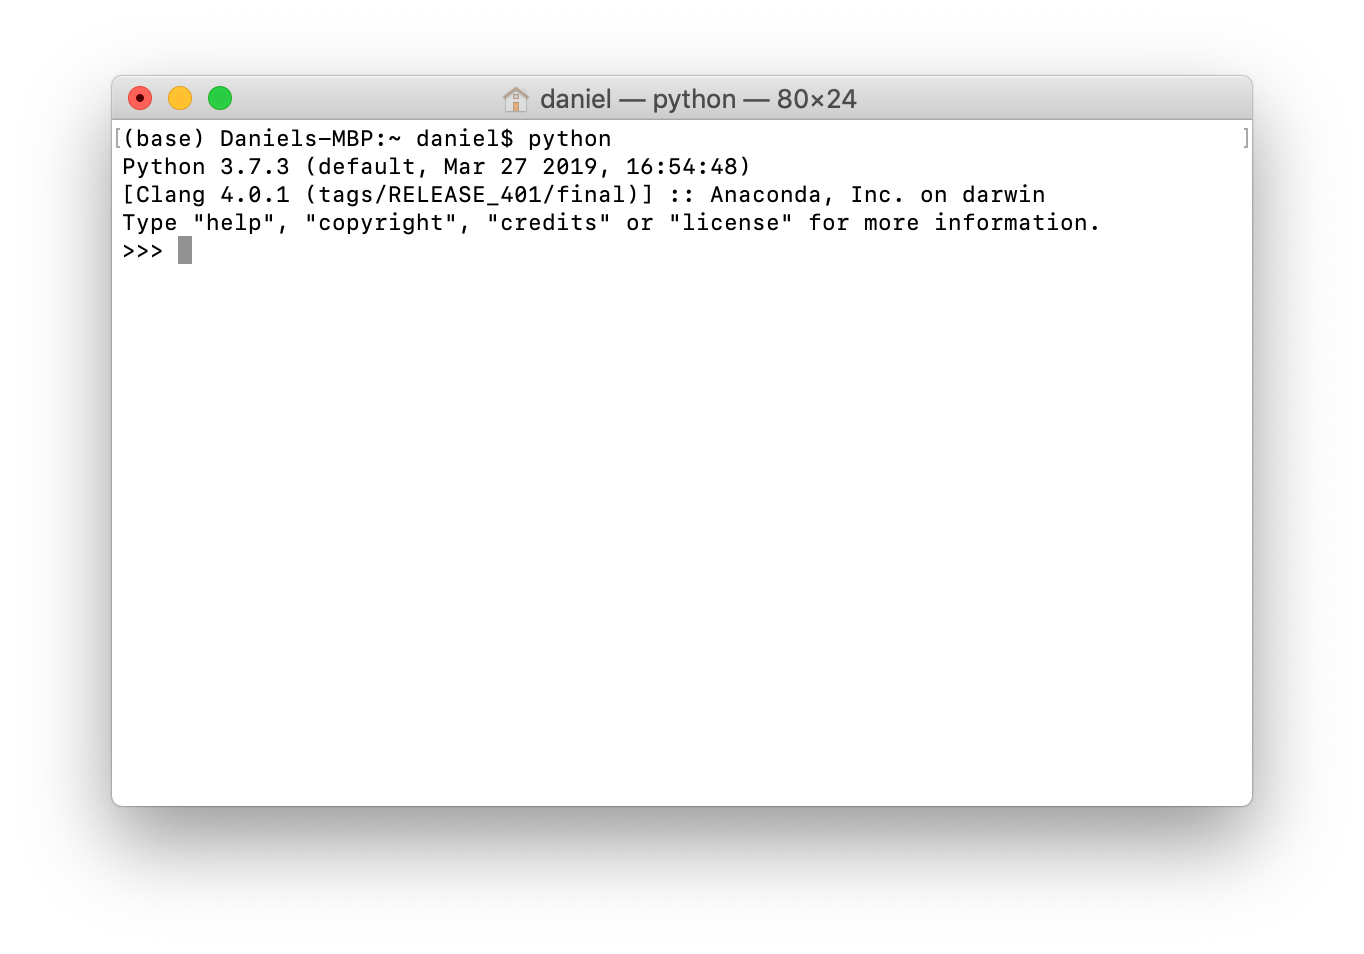 checking the Python distribution on the command line